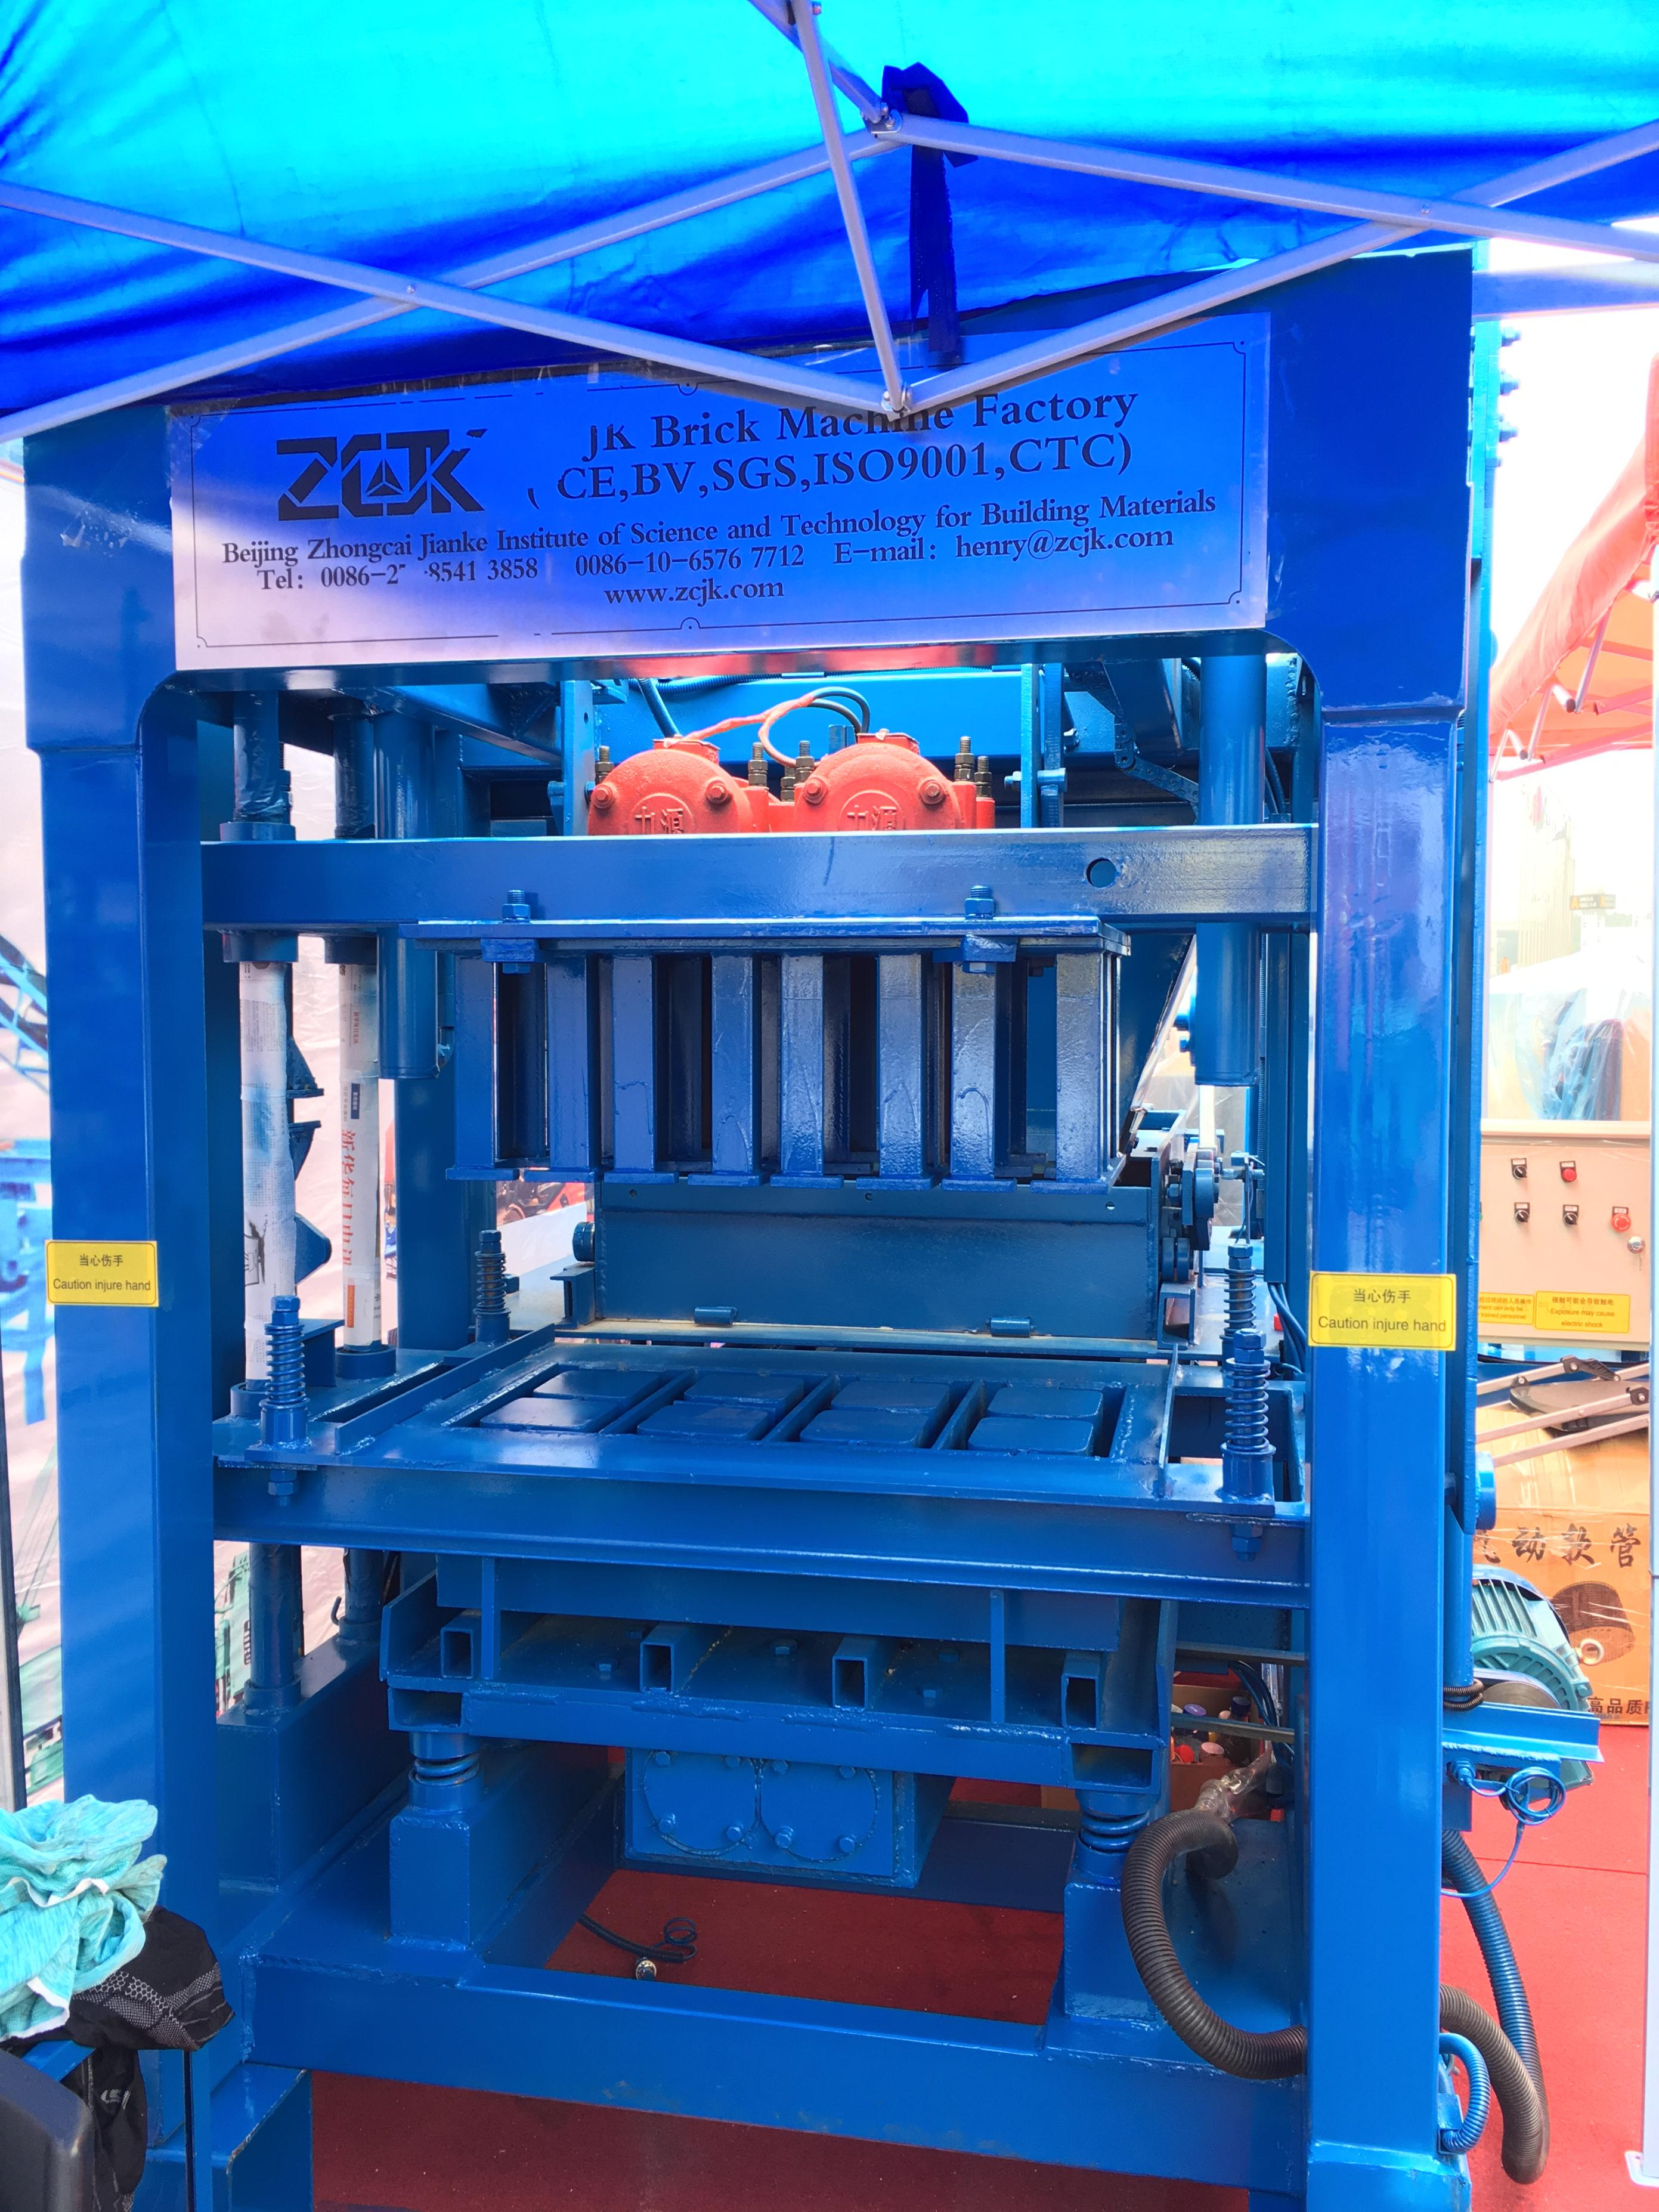 ZCJK Machine in Canton Fair.jpg